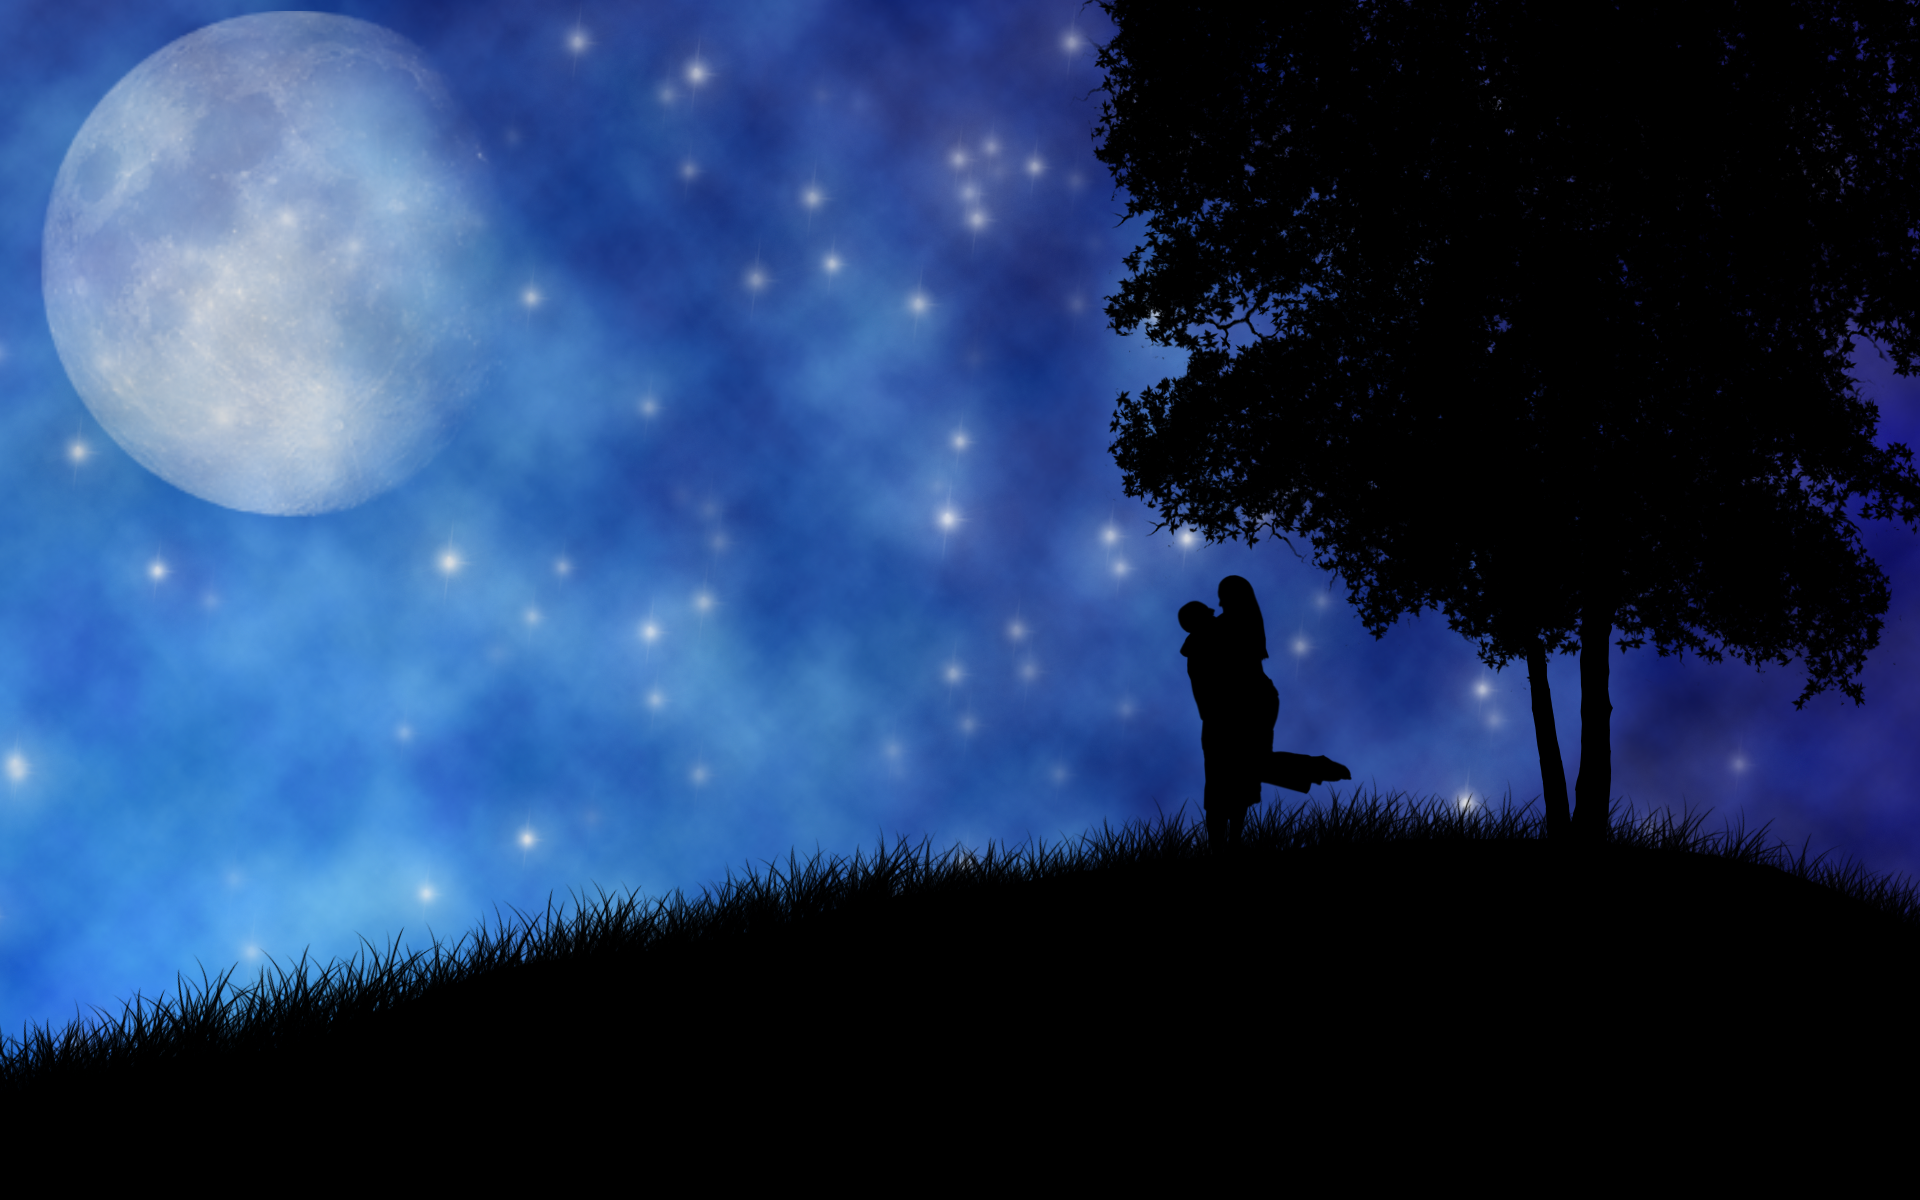 night_love_images_pictures_wallpapers